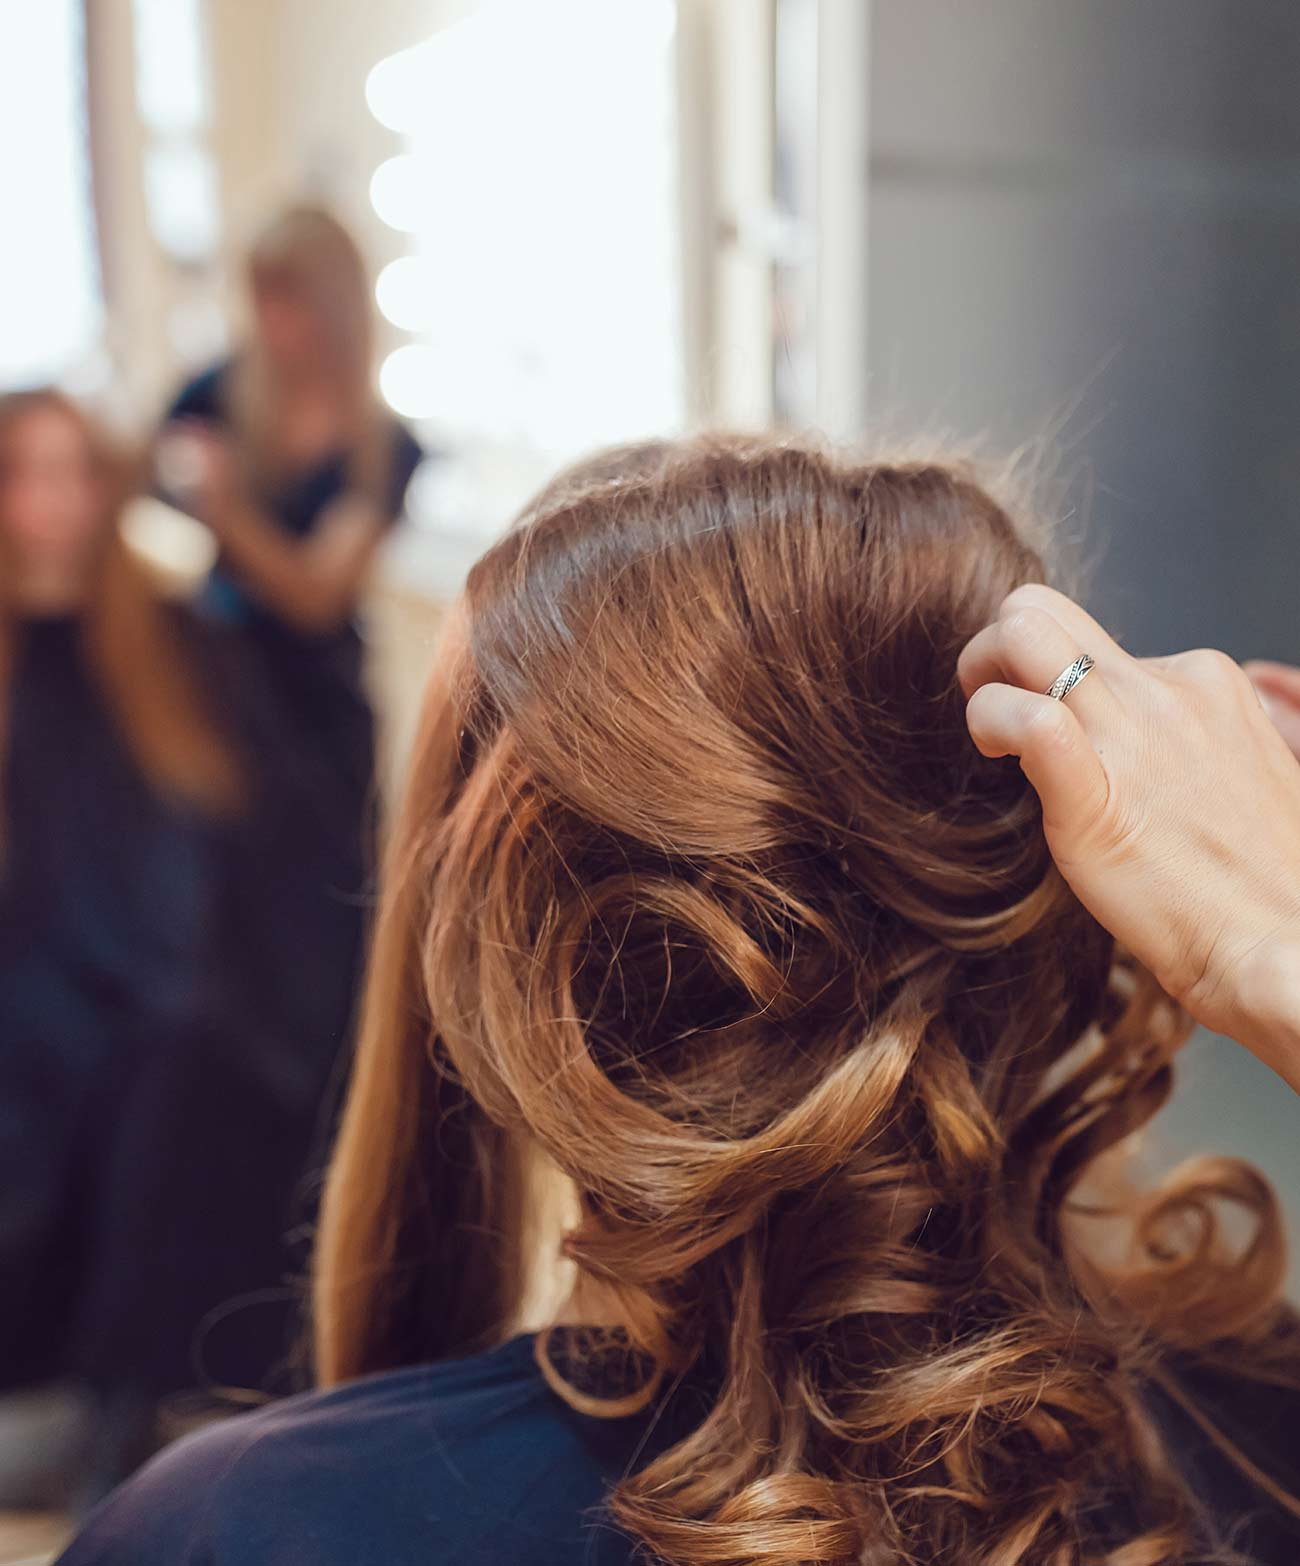 Hairstyle Trends For Spring & Summer 2018